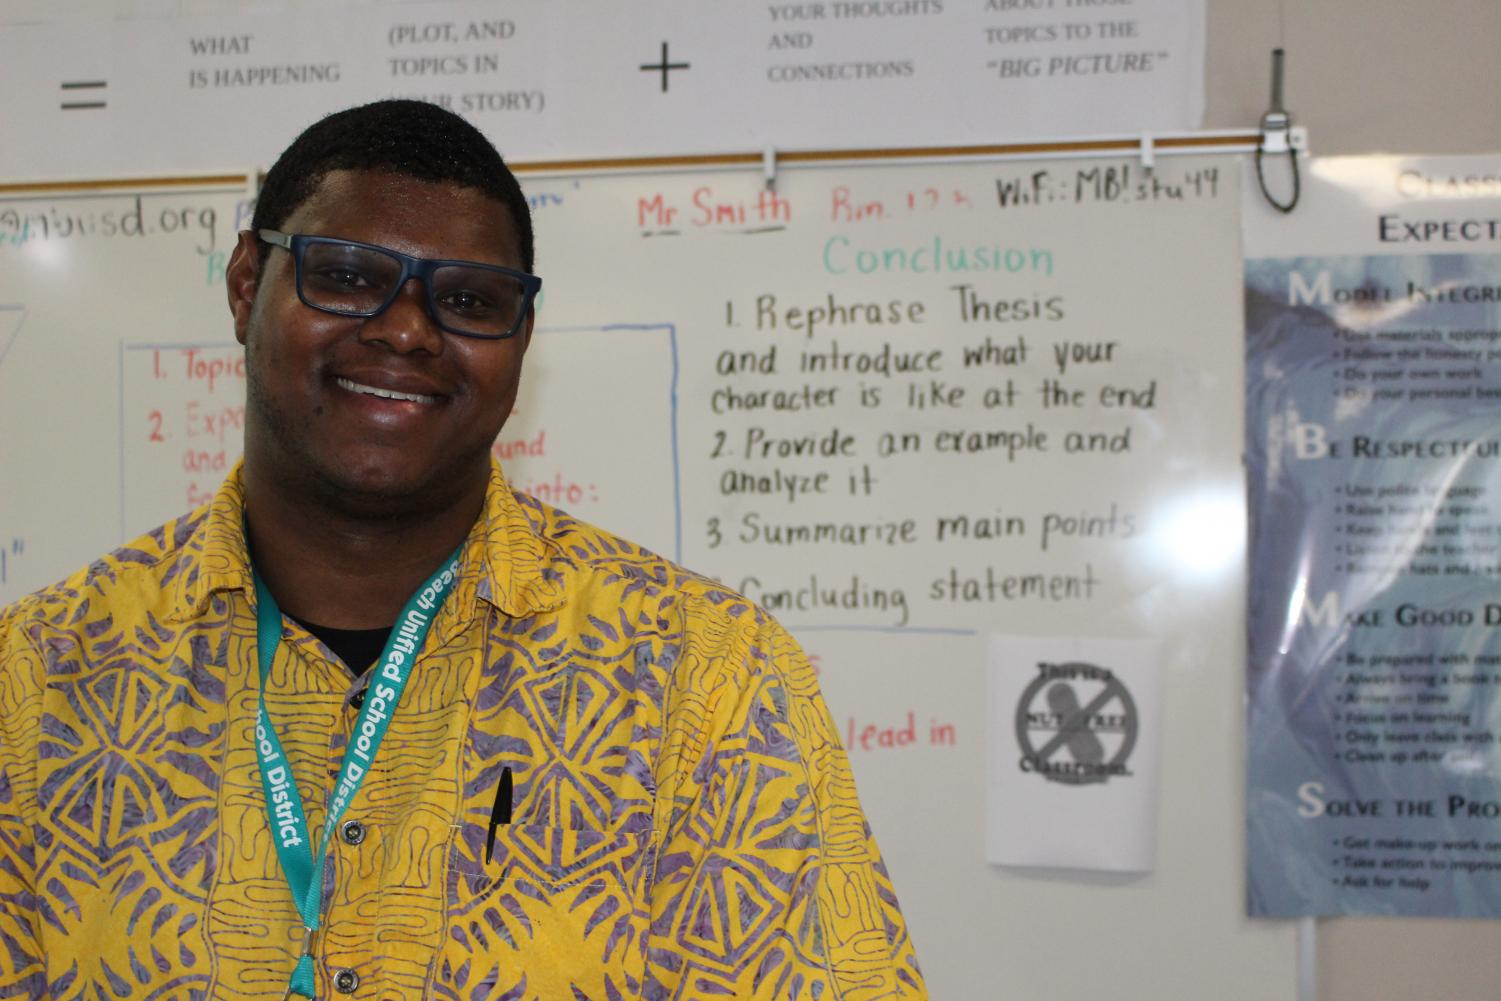 While teaching a fascinating lesson on conclusion paragraphs, Mr. Smith poses for the camera.